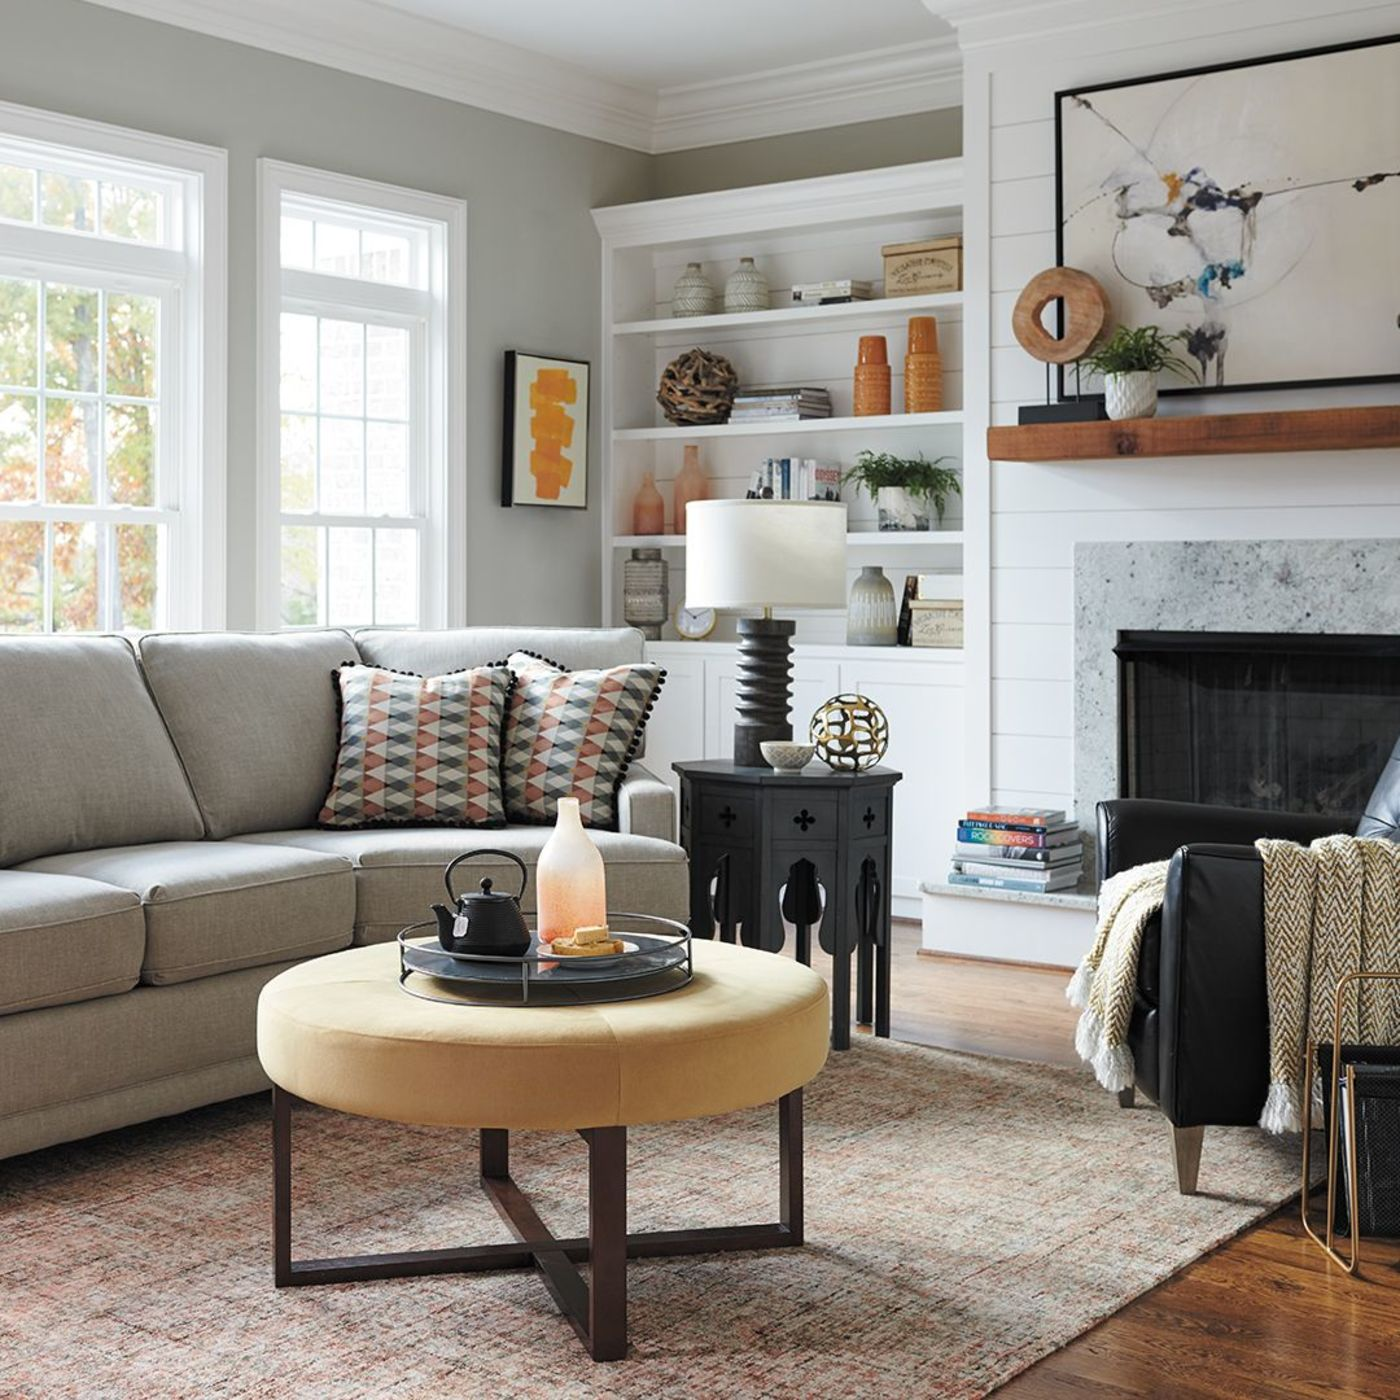 7 Best Modern & Minimalistic Sectional Sofas in 2018 PT 2